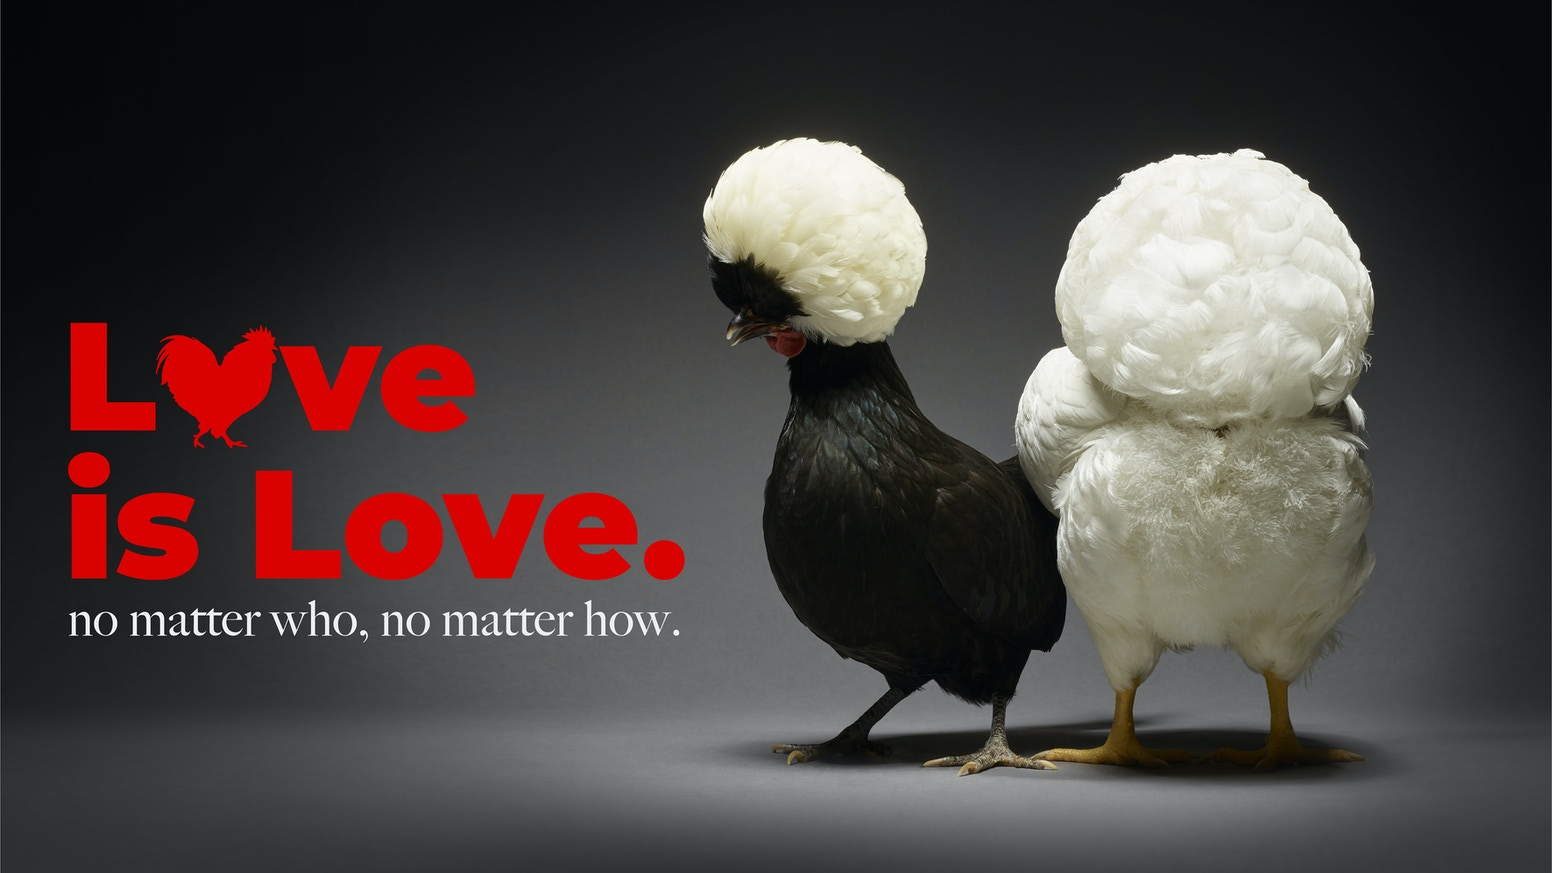 Photographic Book about Love....and Chicken!